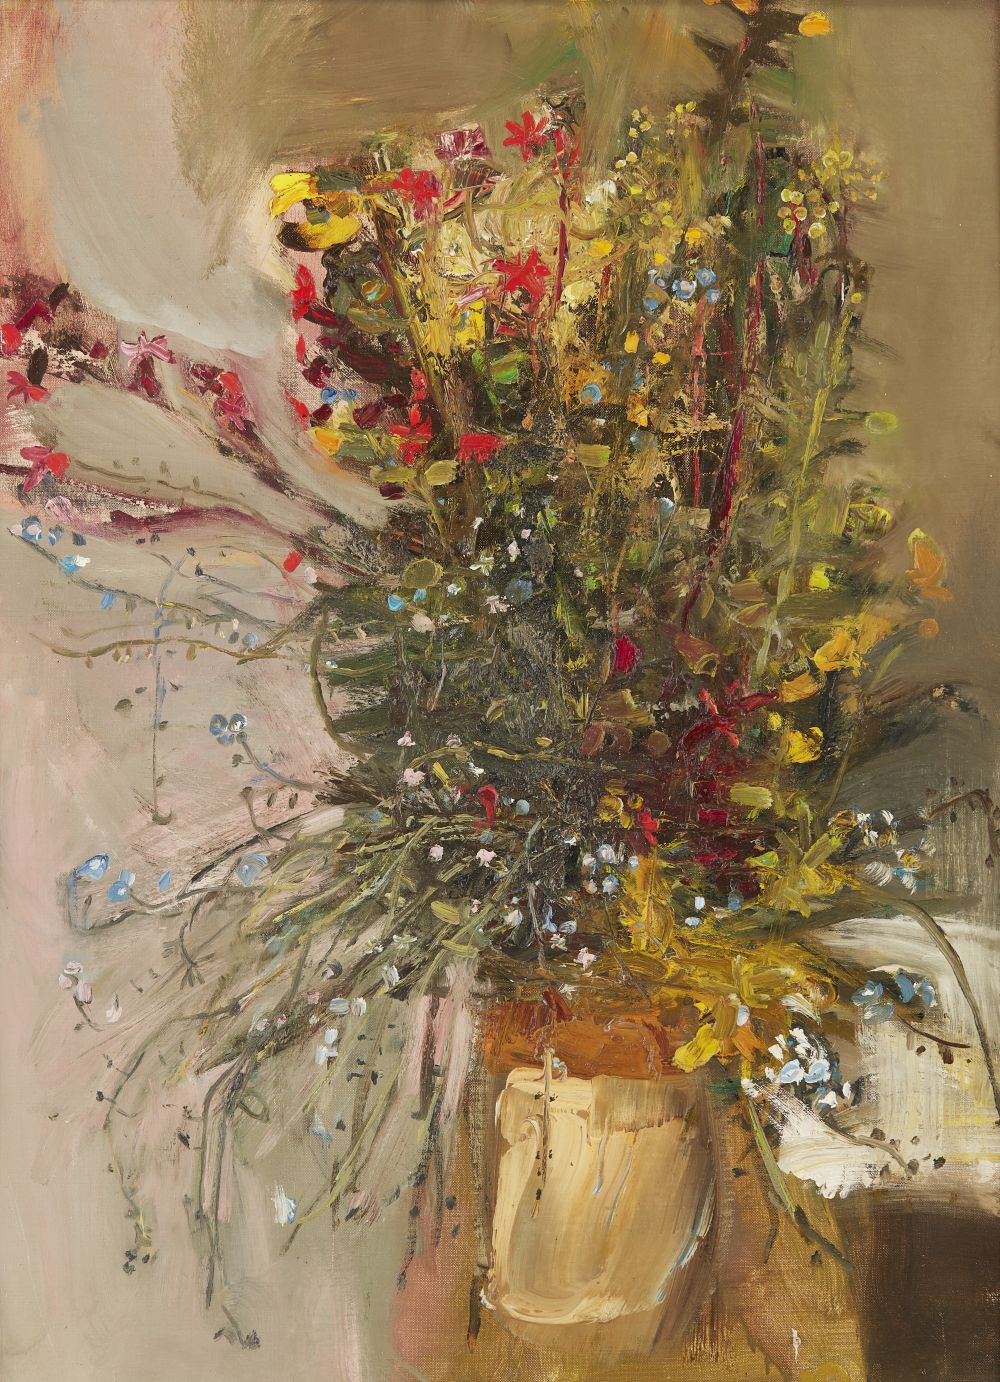 Joan Eardley R.S.A (Scottish 1921-1963) | Jar of Summer Flower, 1963 | Inscribed with the inventory number EE89, oil on canvas | 76cm x 56cm (30in x 22in) | £30,000 - 50,000 + fees